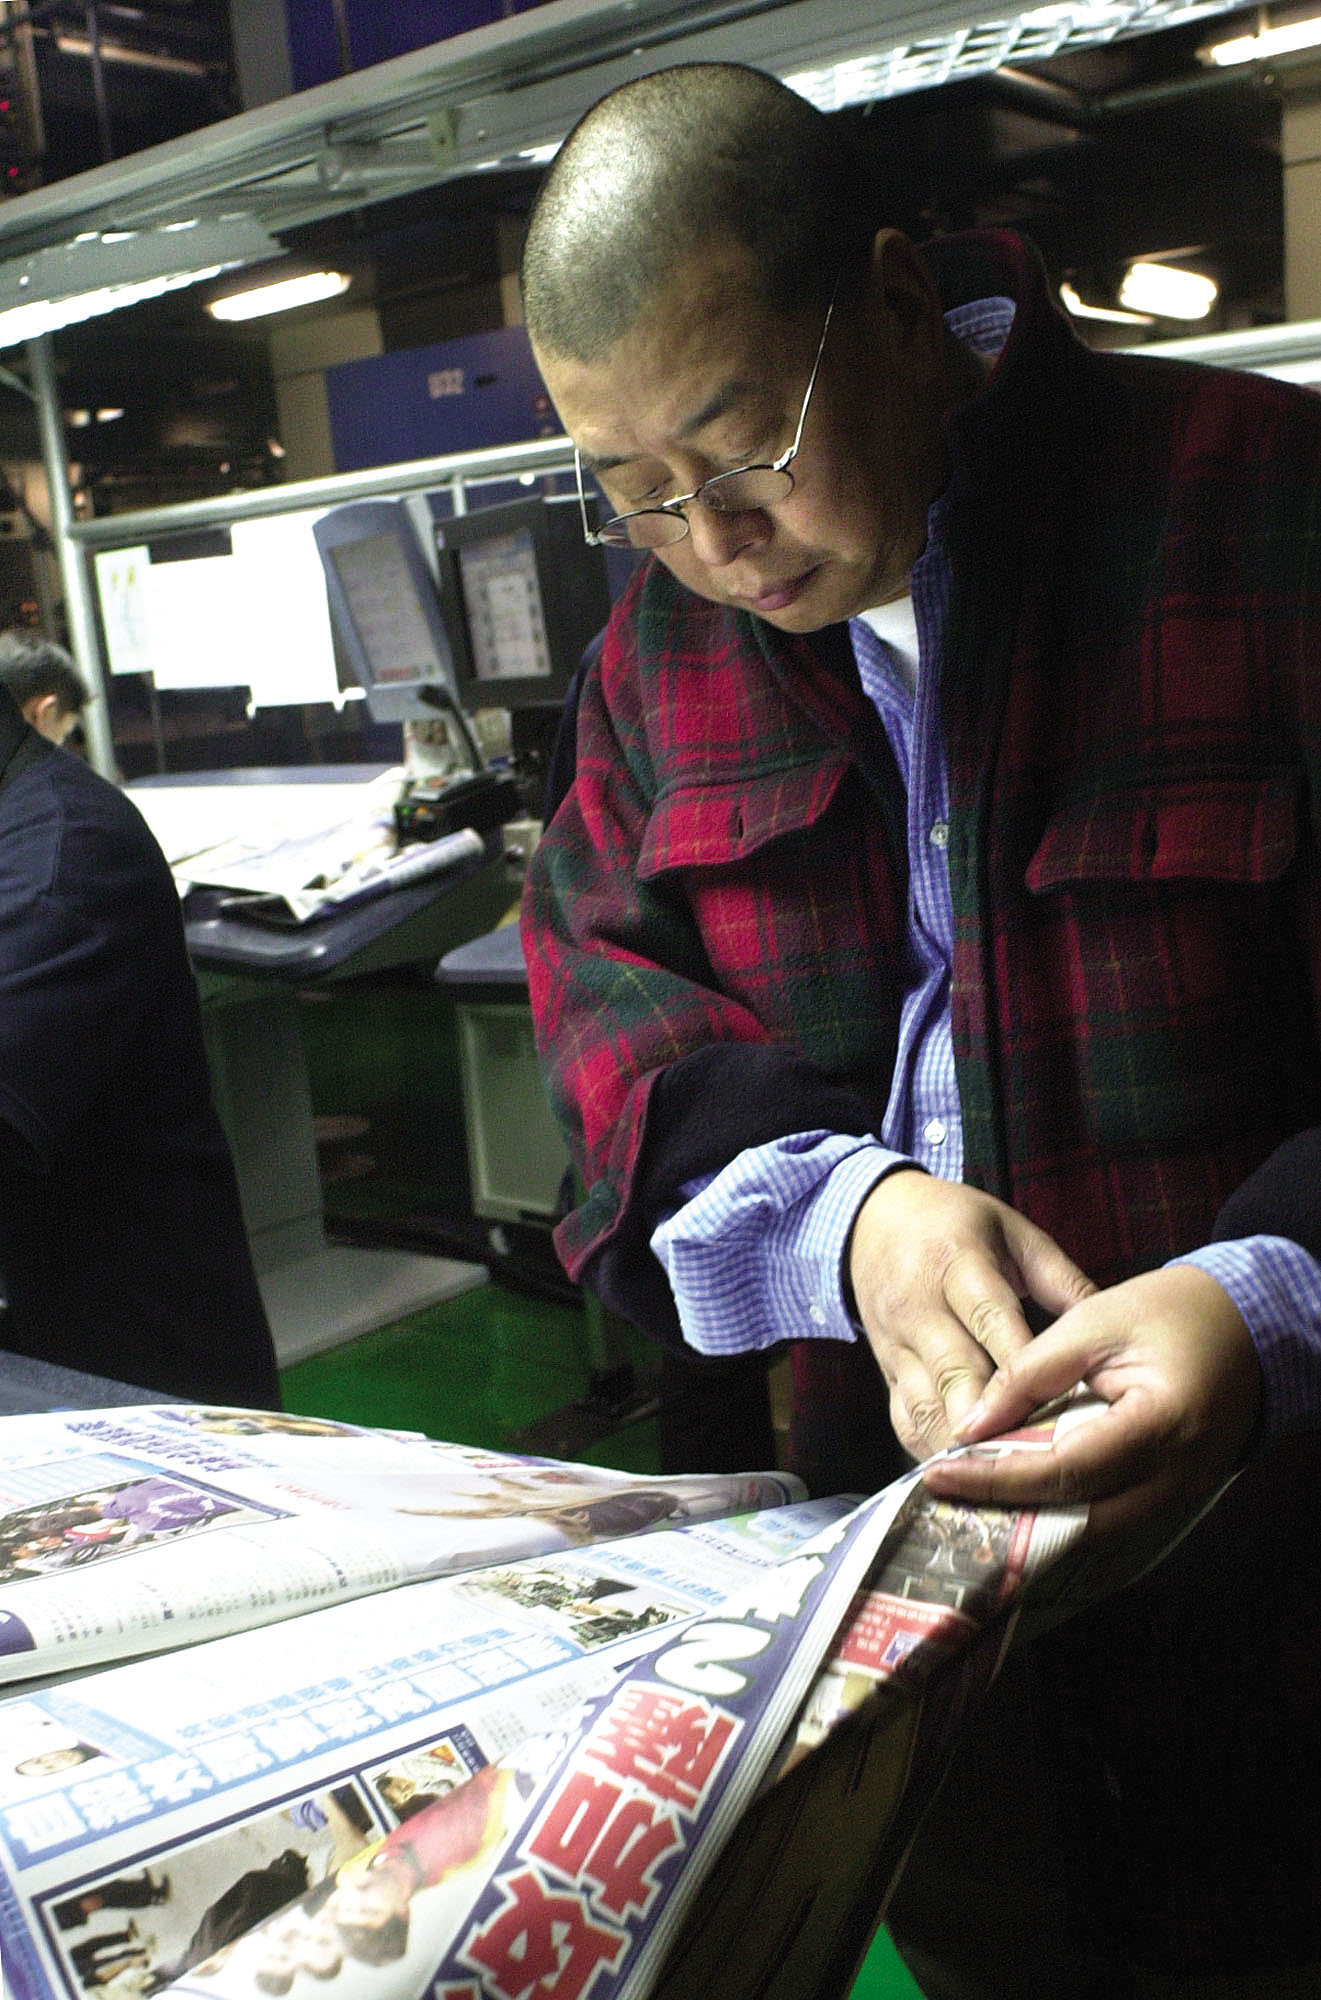 Hong Kong media tycoon Jimmy Lai is pictured reading the Apple Daily, a Chinese-language newspaper under Hong Kong's Next Media Ltd.